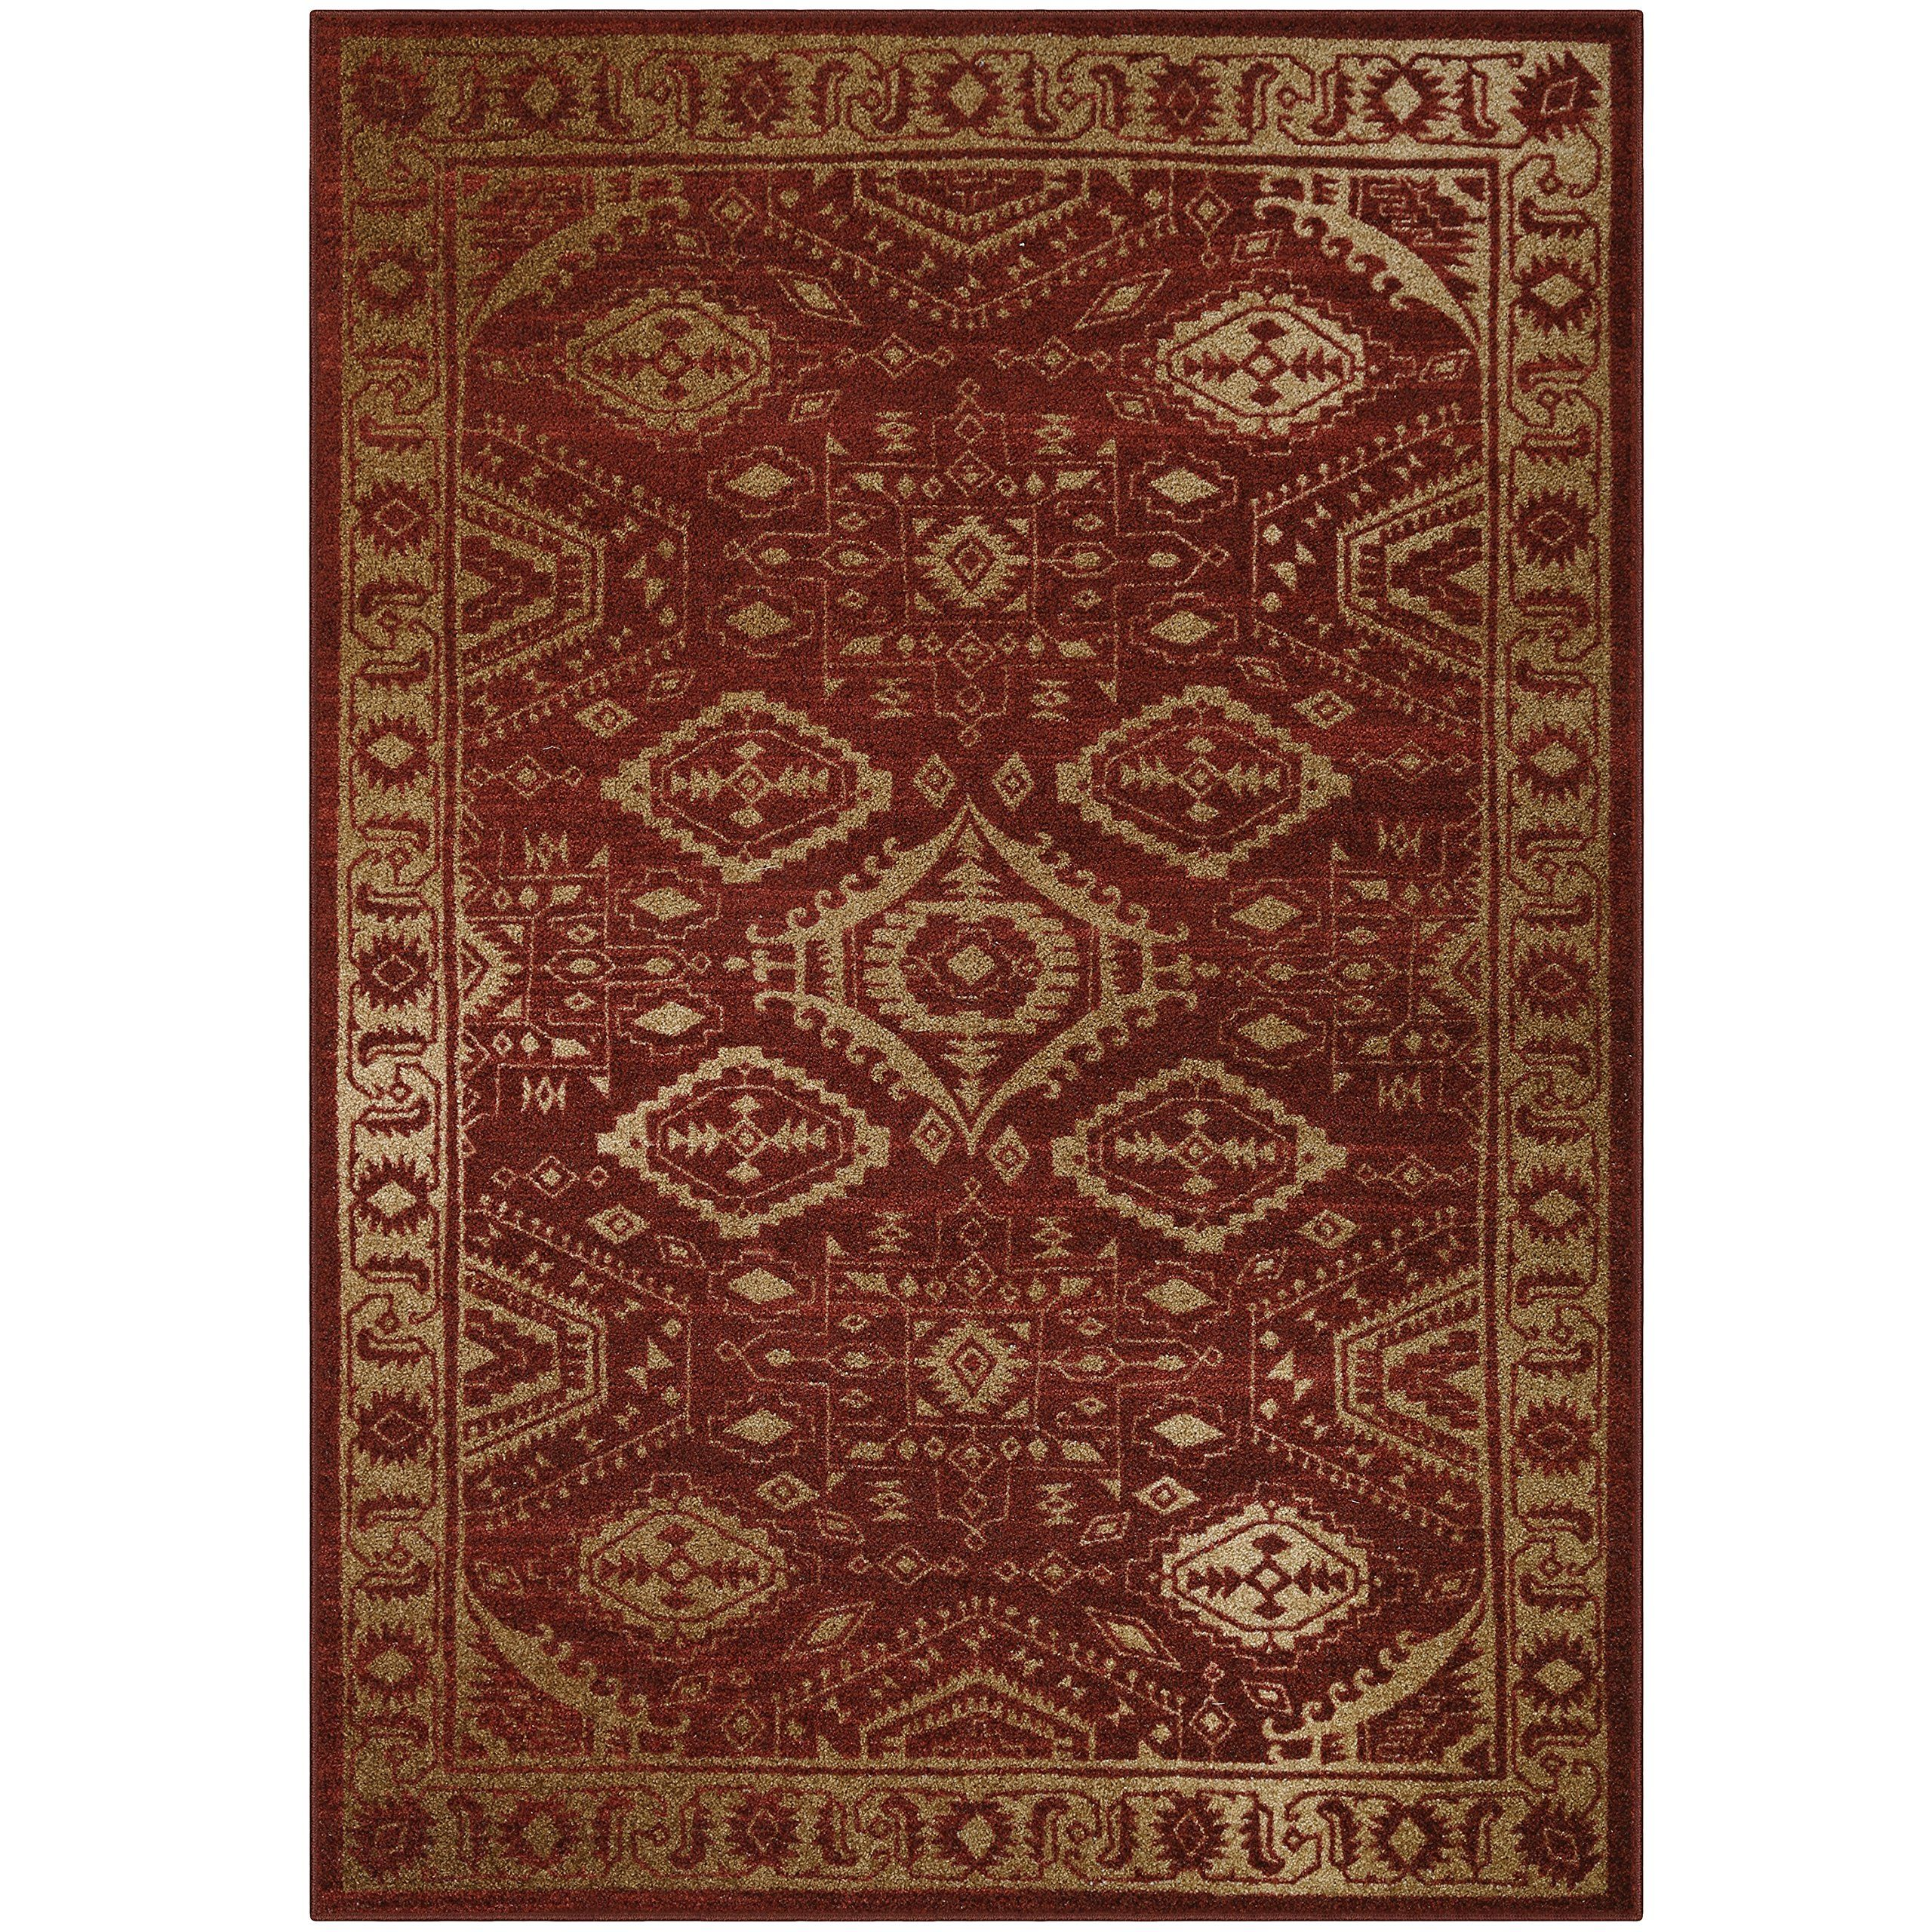 Maples Rugs Georgina Traditional Area Rugs For Living Room And